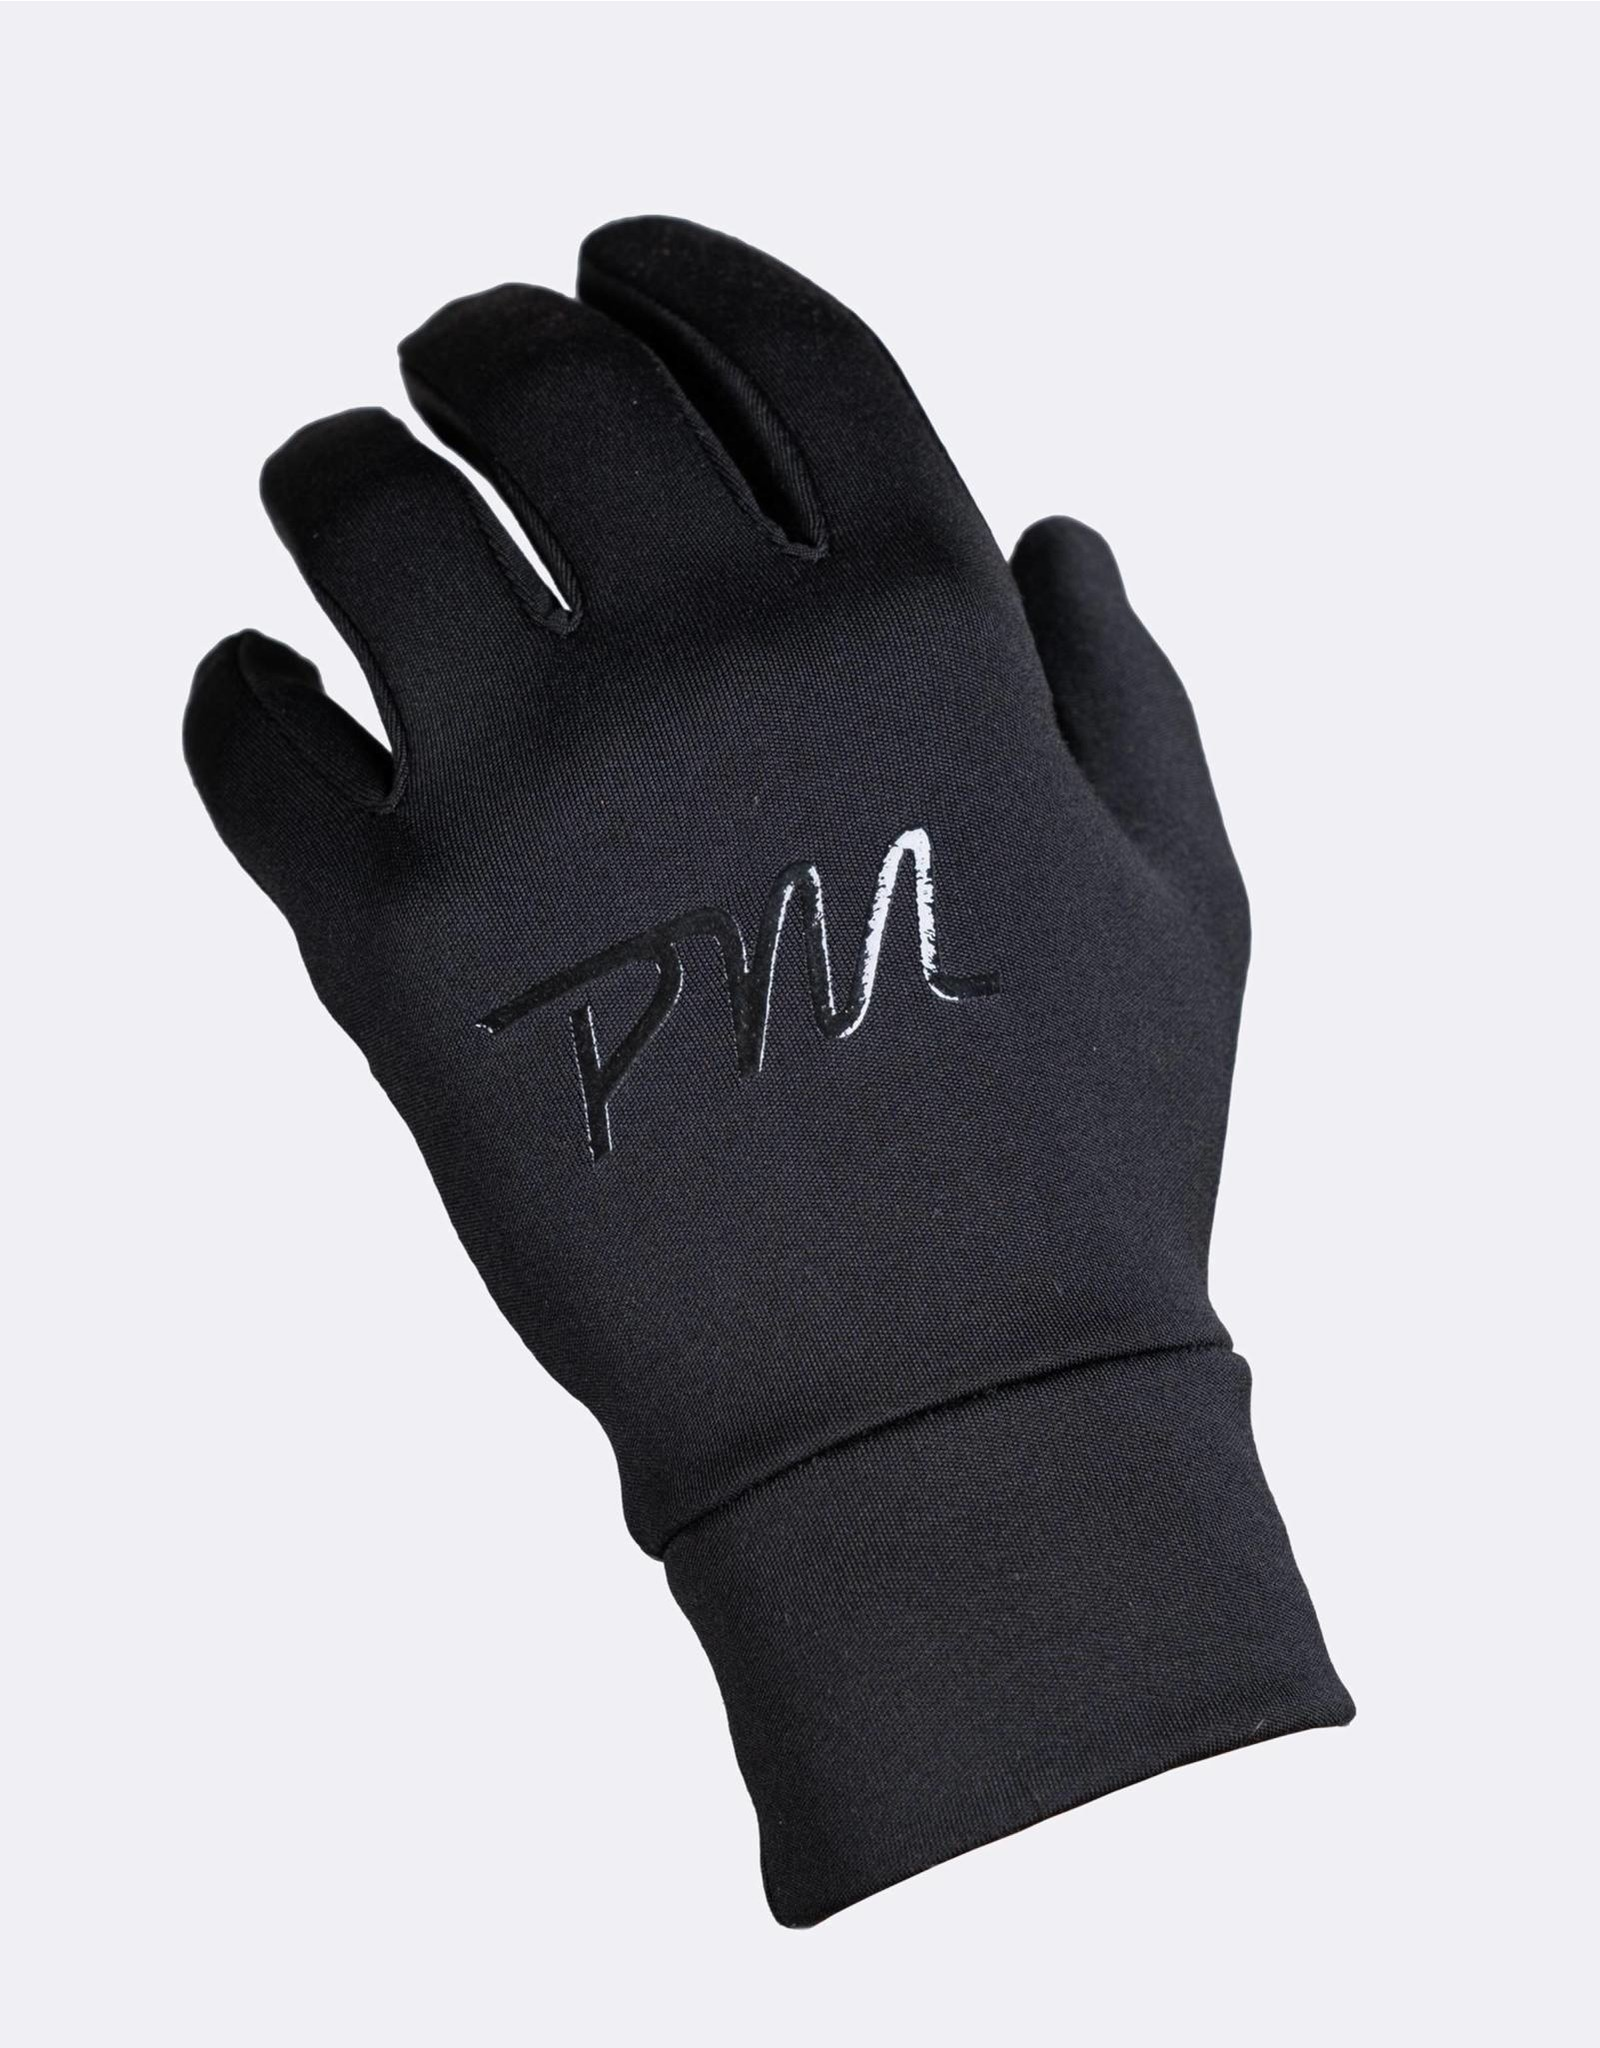 Pedal Mafia Stealth Thermal Glove Black